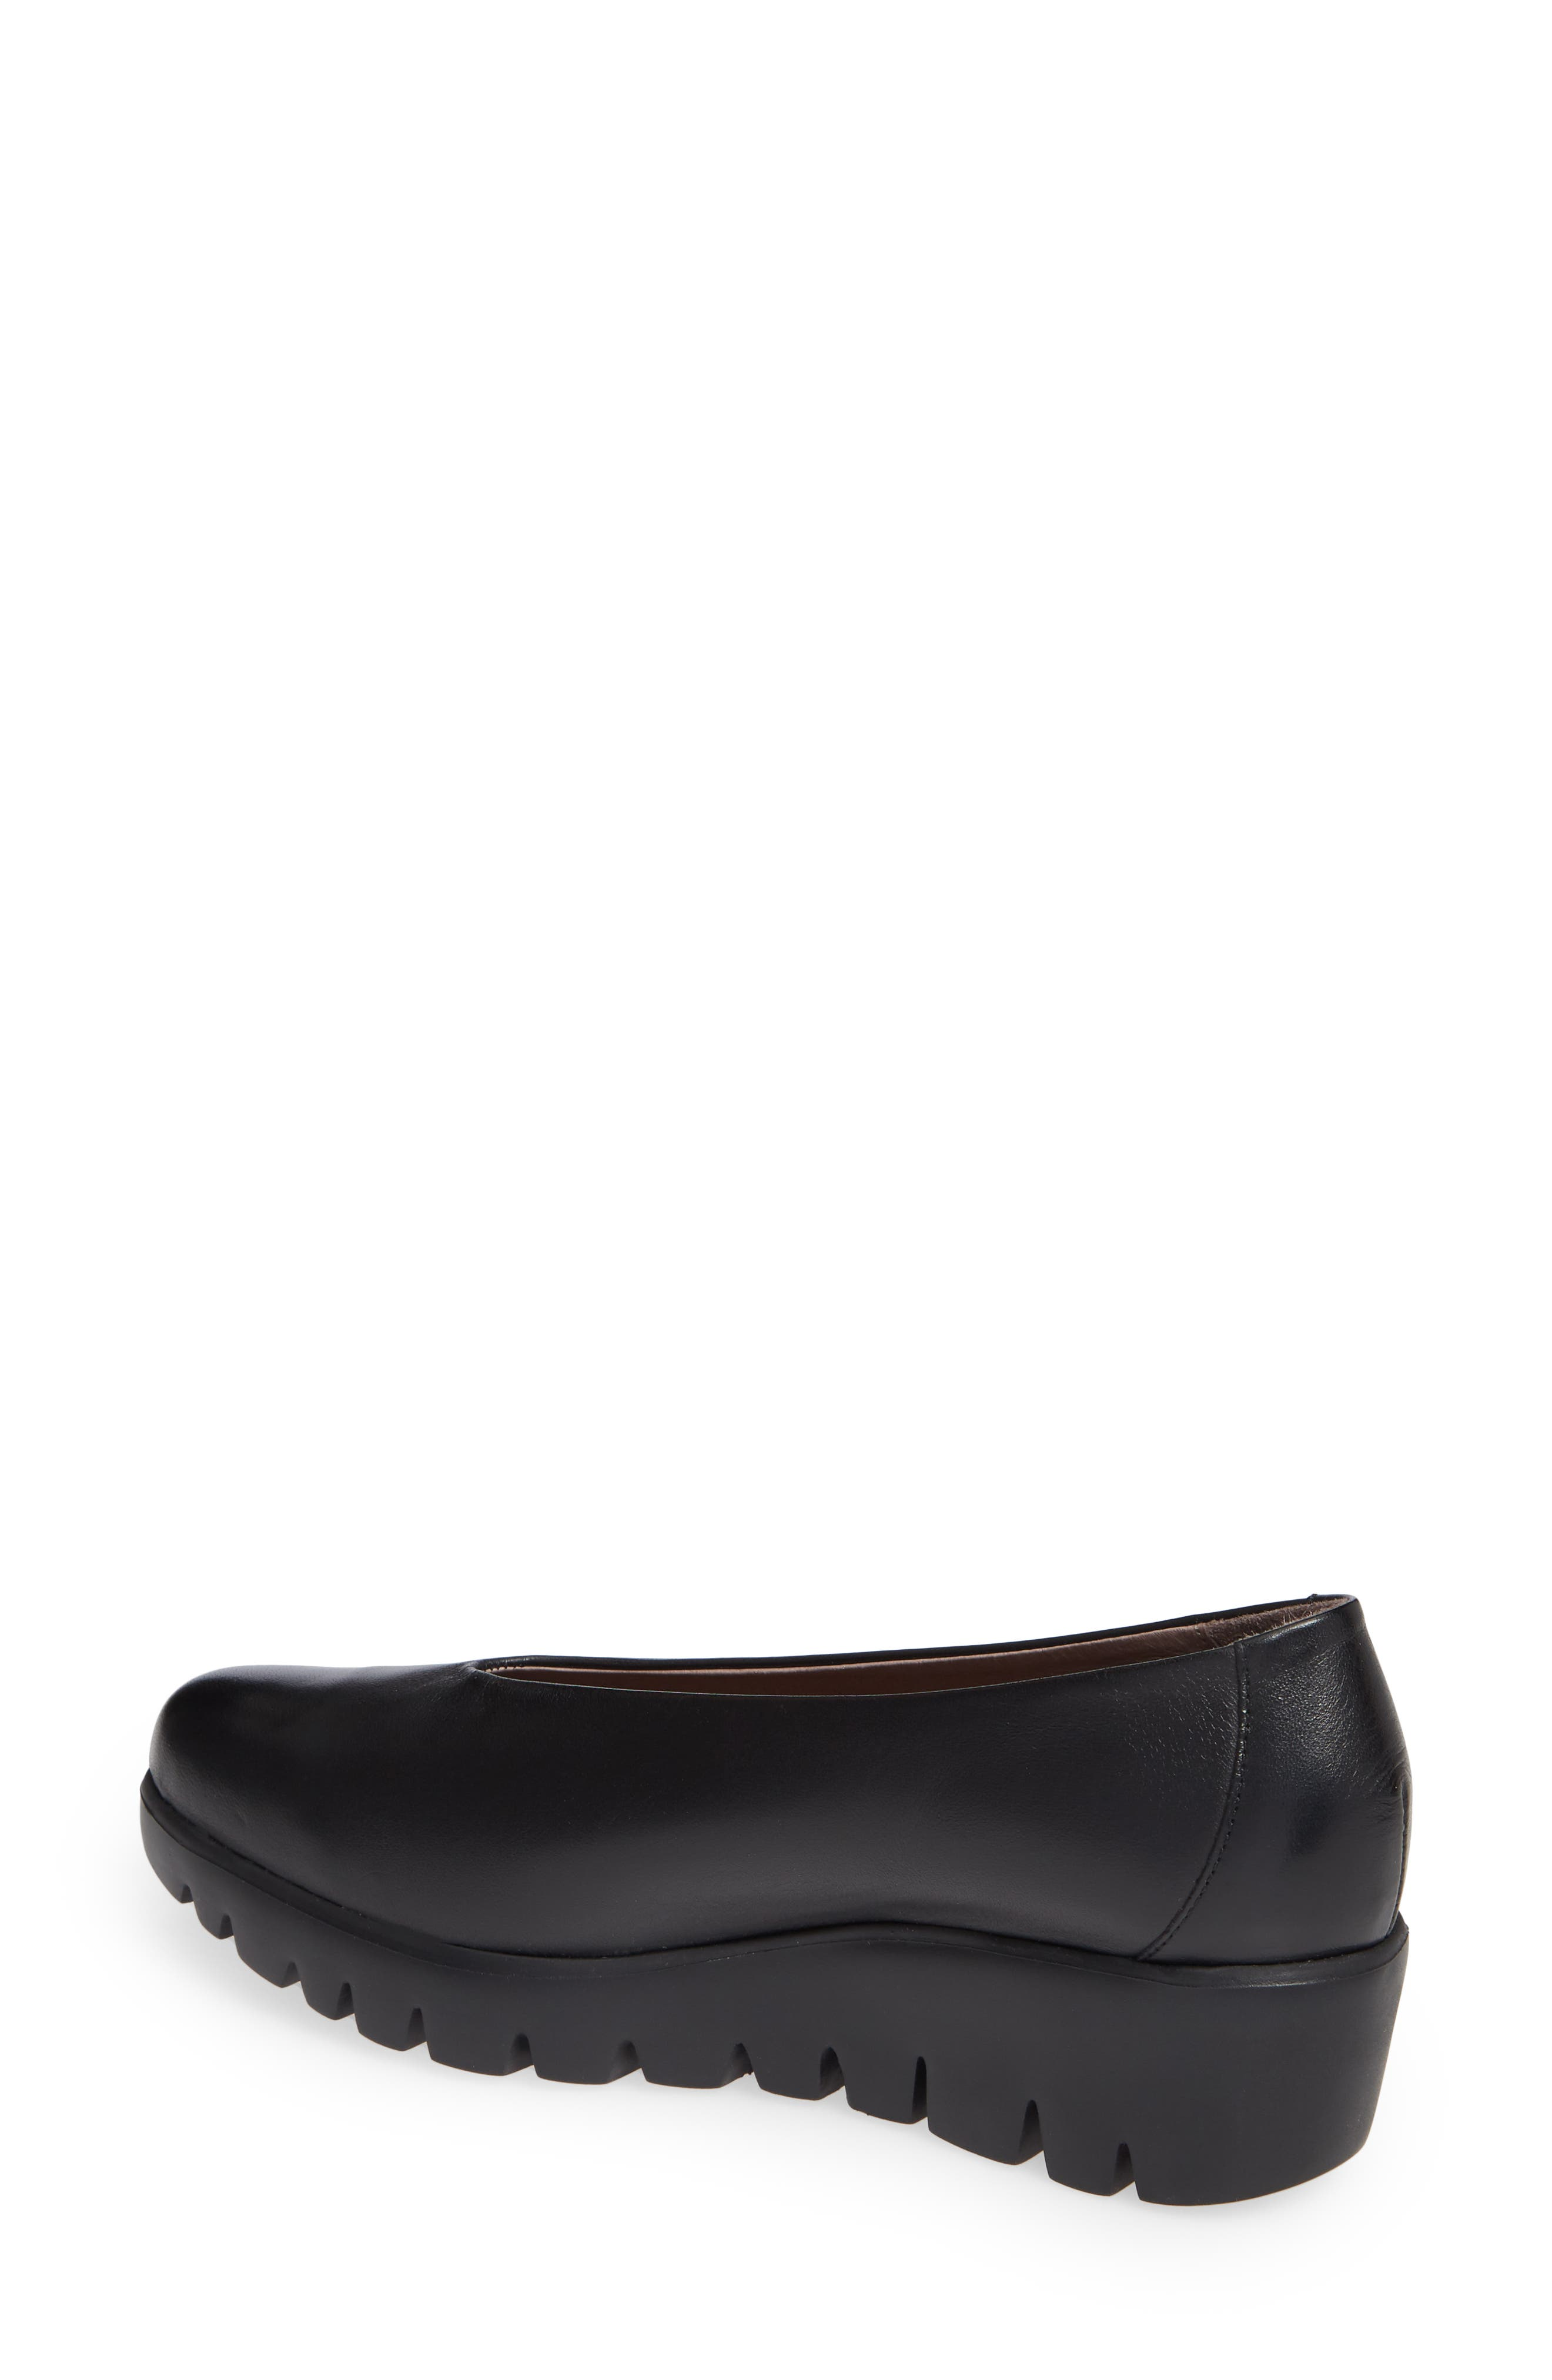 Extralite Wedge Pump,                             Alternate thumbnail 2, color,                             BLACK LEATHER